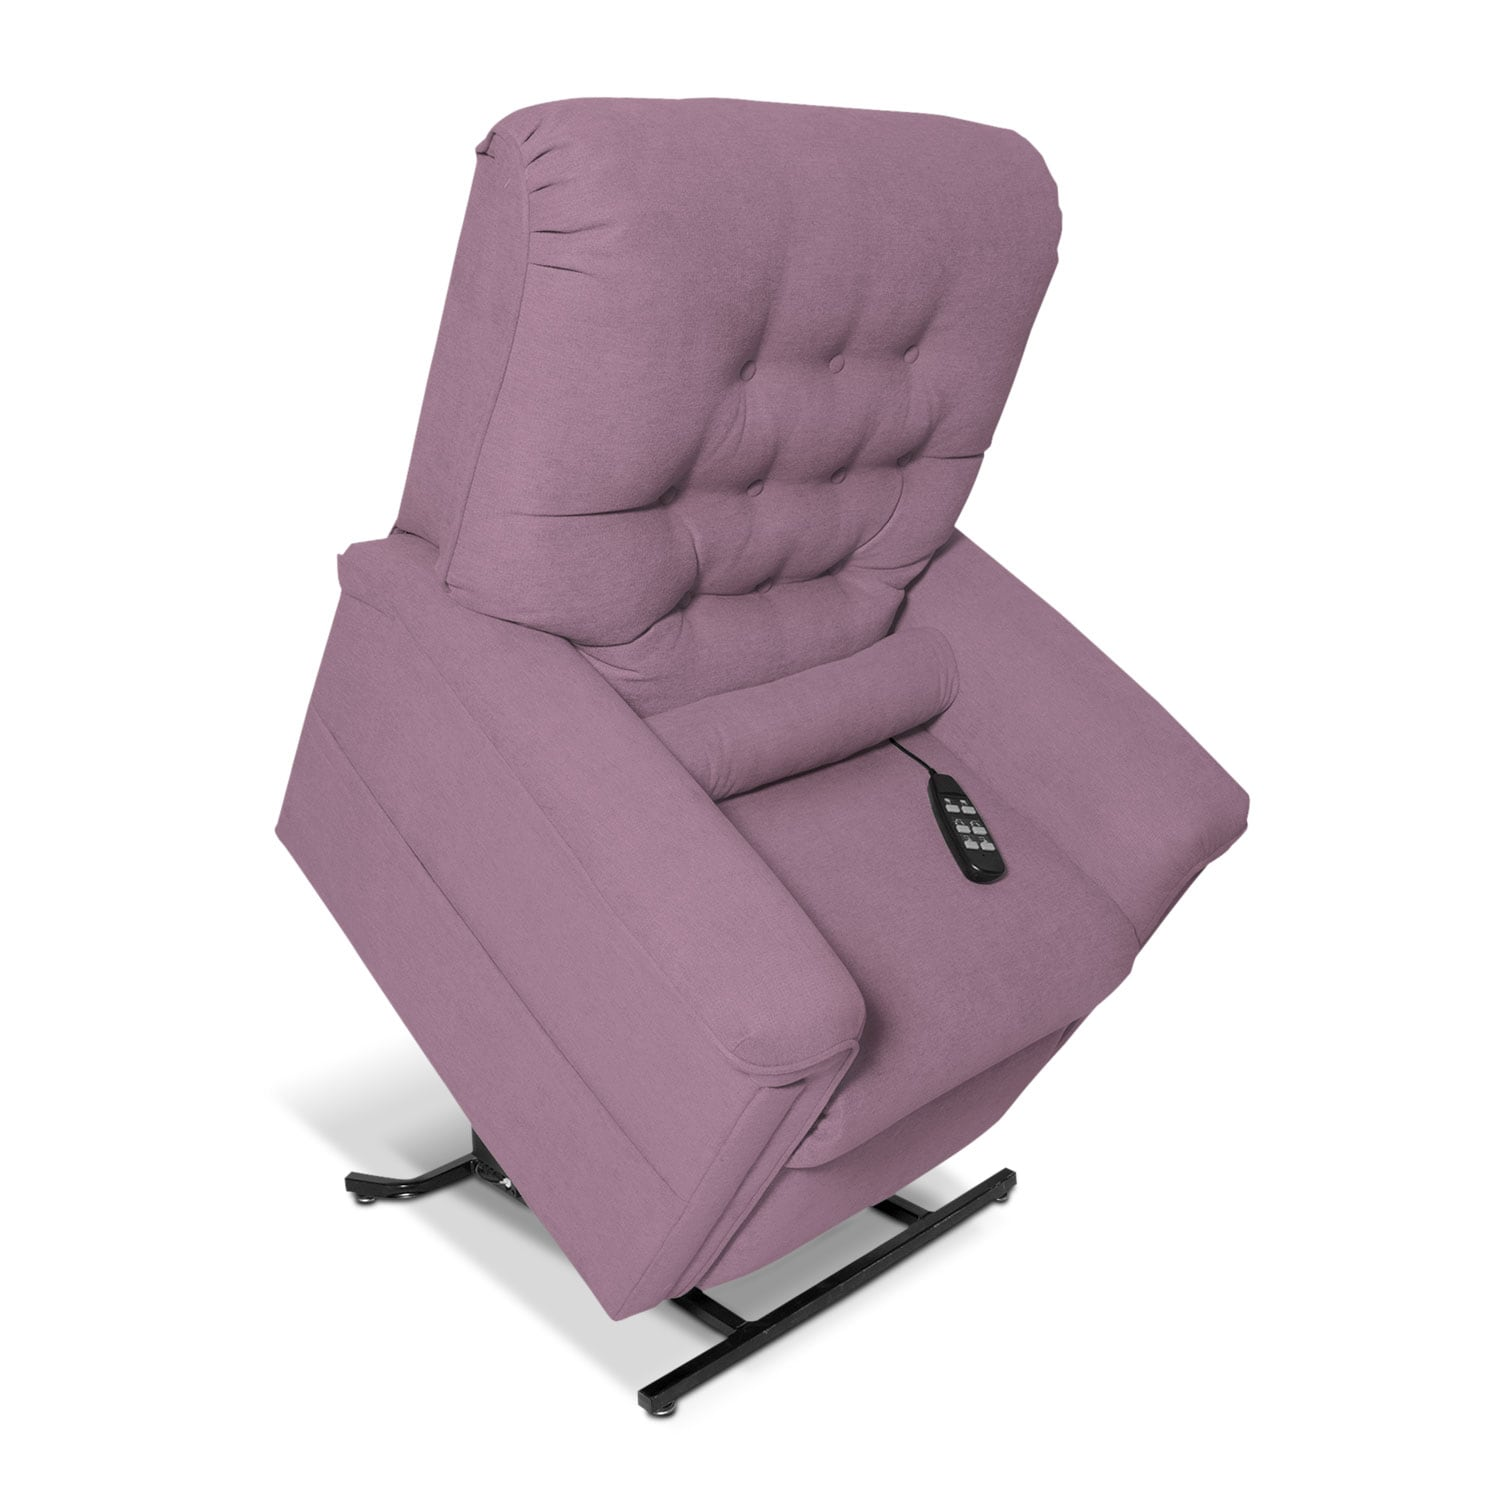 Living Room Furniture - Marcy Lift Chair - Lavender